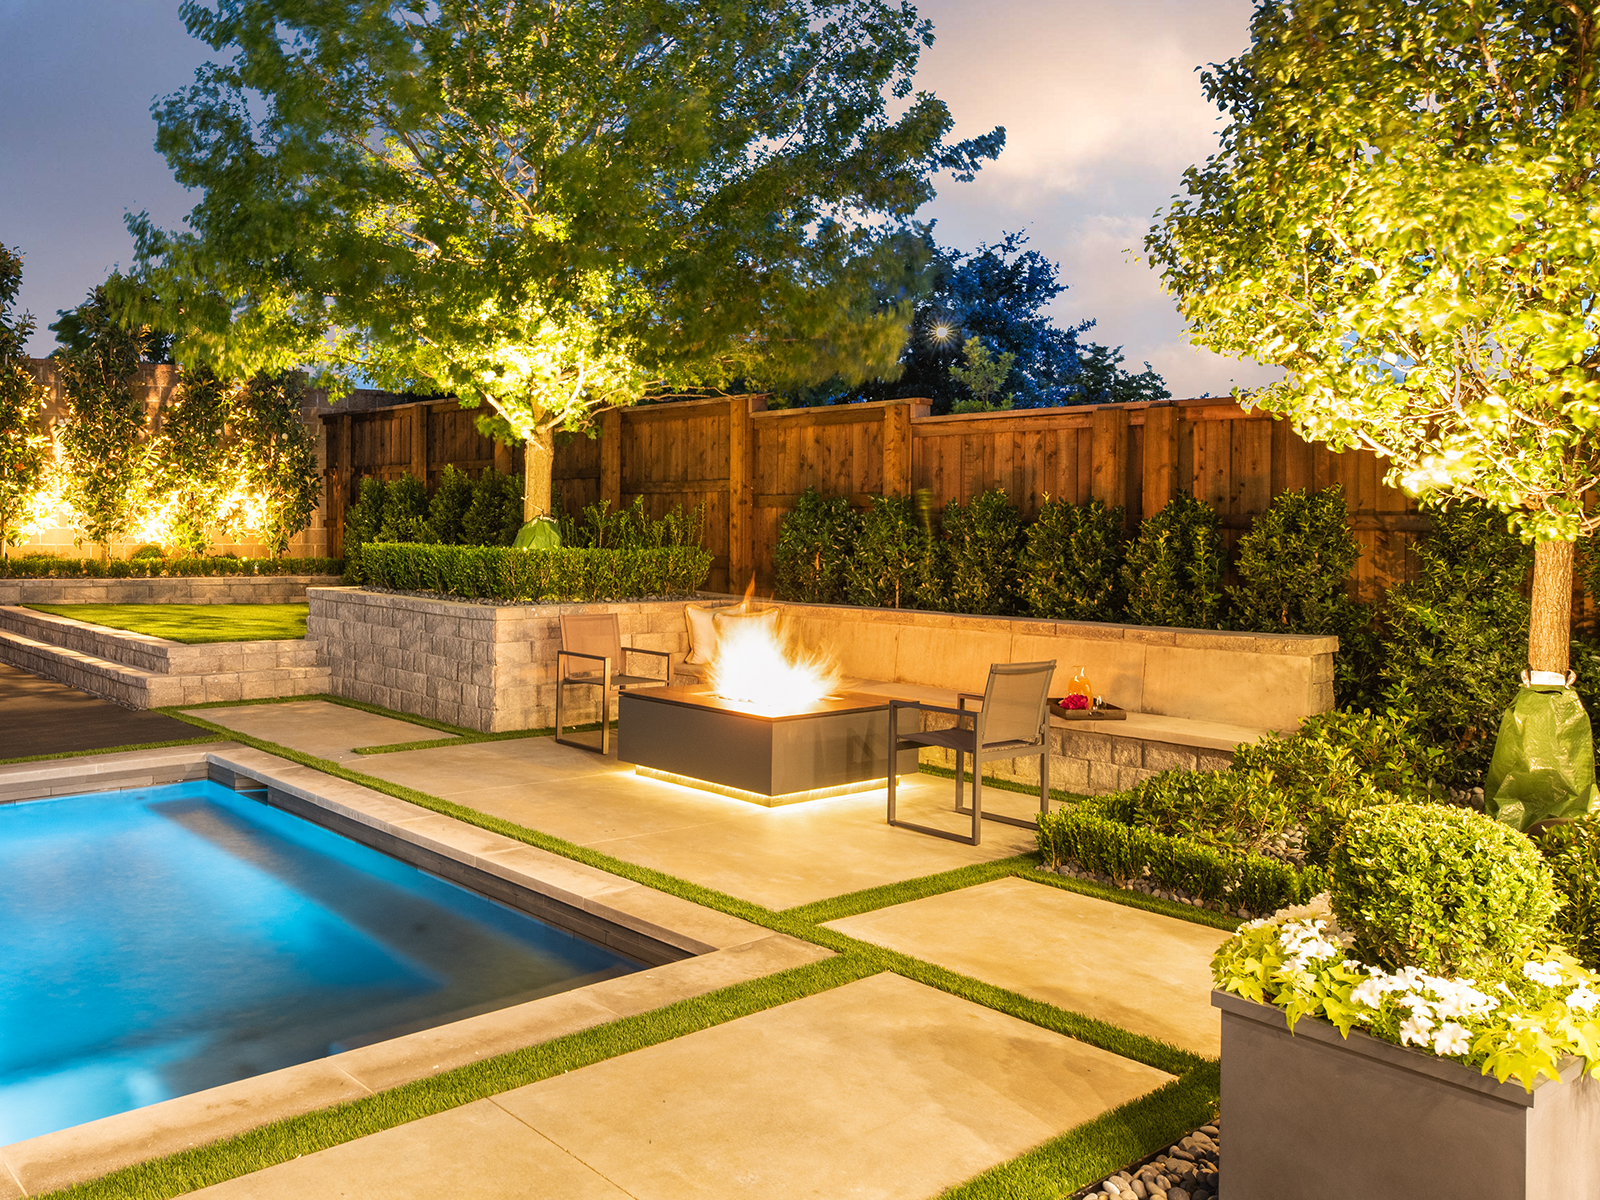 ddla_design-norwood_outdoor_pool_terrace_night.jpg